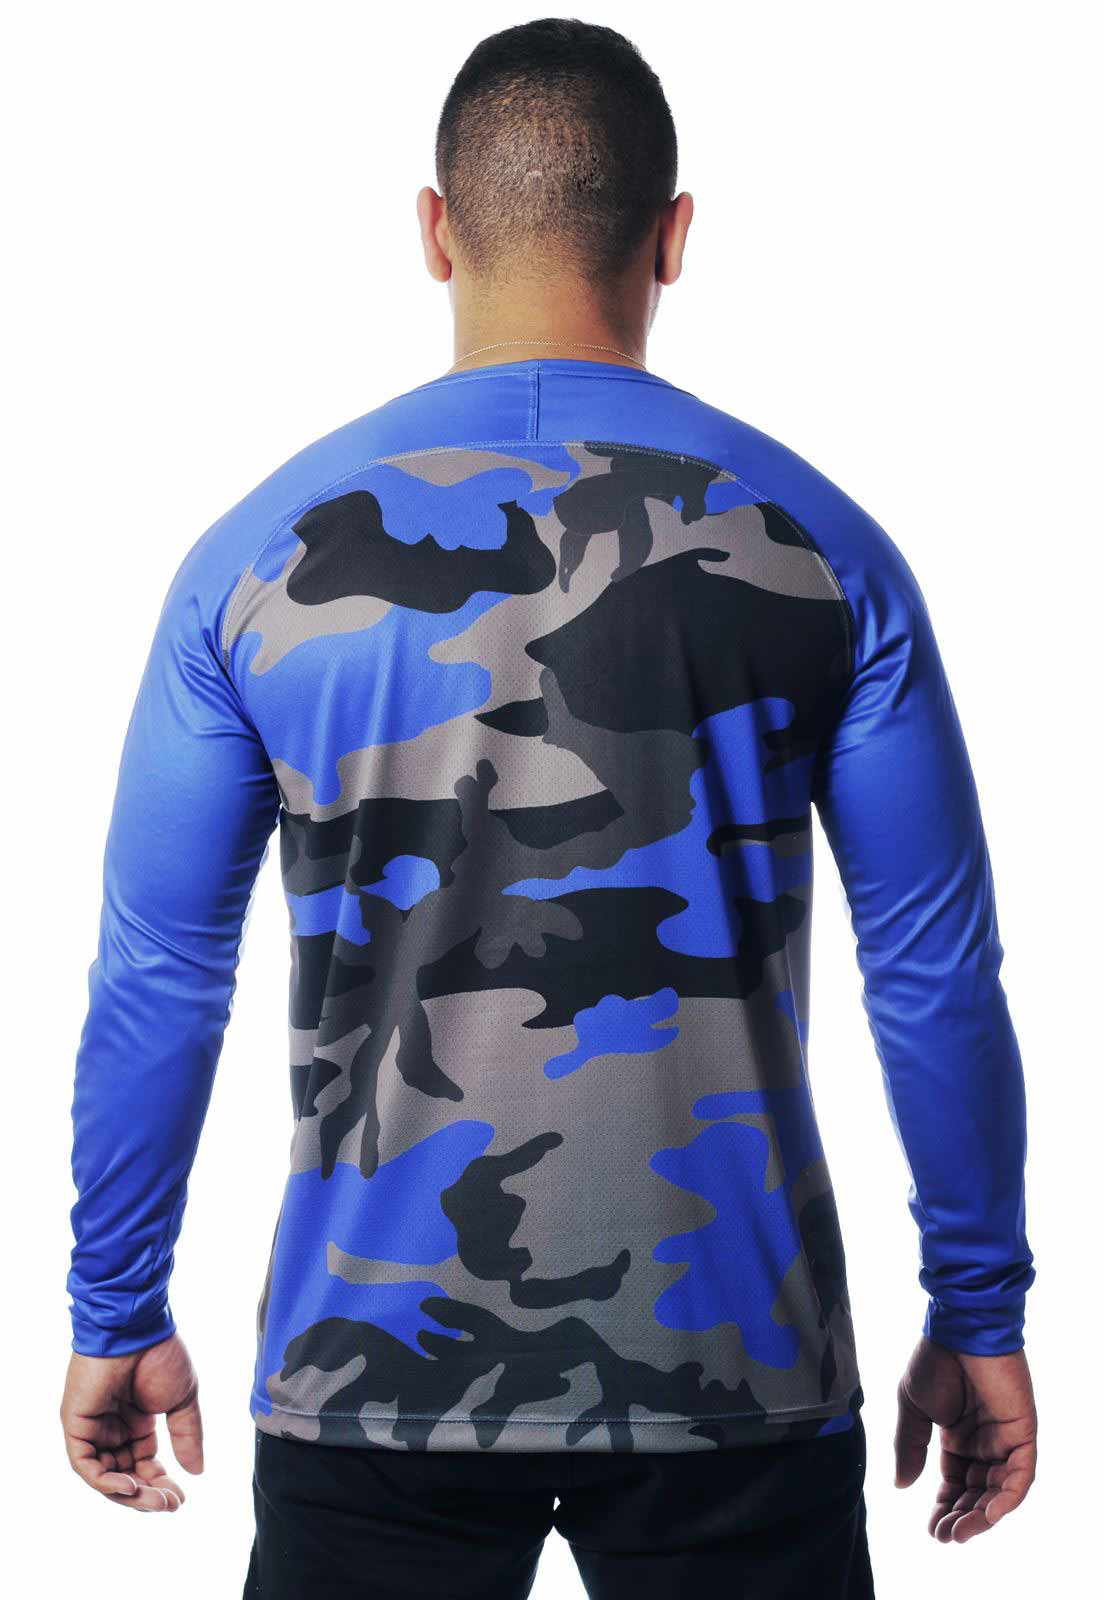 CAMISETA CAMUFLADA LAZER 23 MANGA LONGA MASCULINA  - REAL HUNTER OUTDOORS